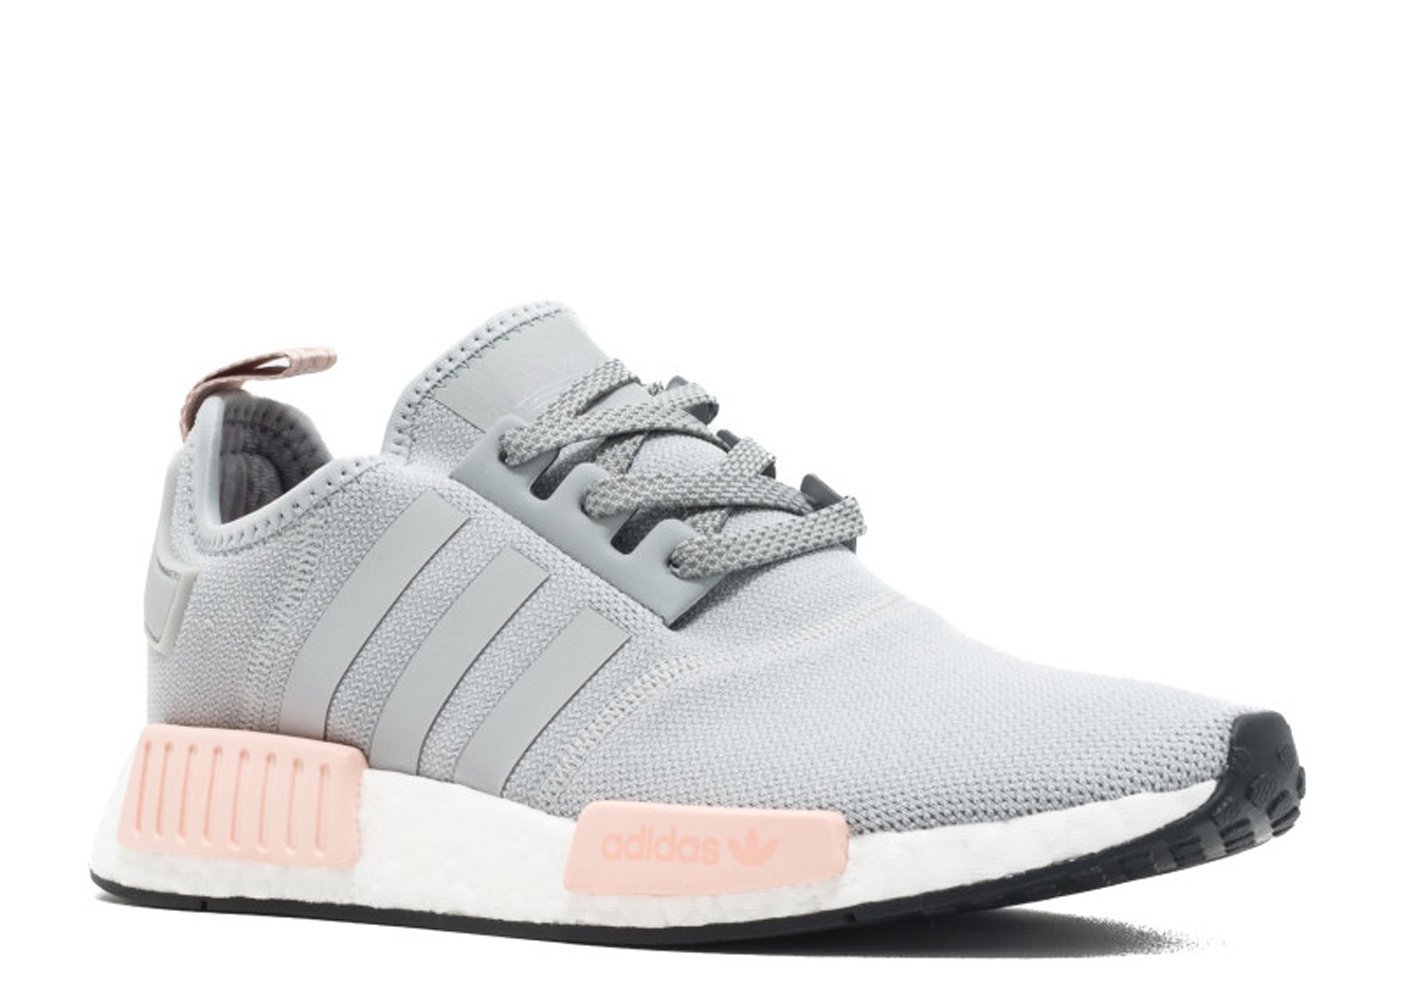 best authentic 3cbde 9572c Fashion nmd r1 raw gray pink women's casual shoes sold by BELLDRESS